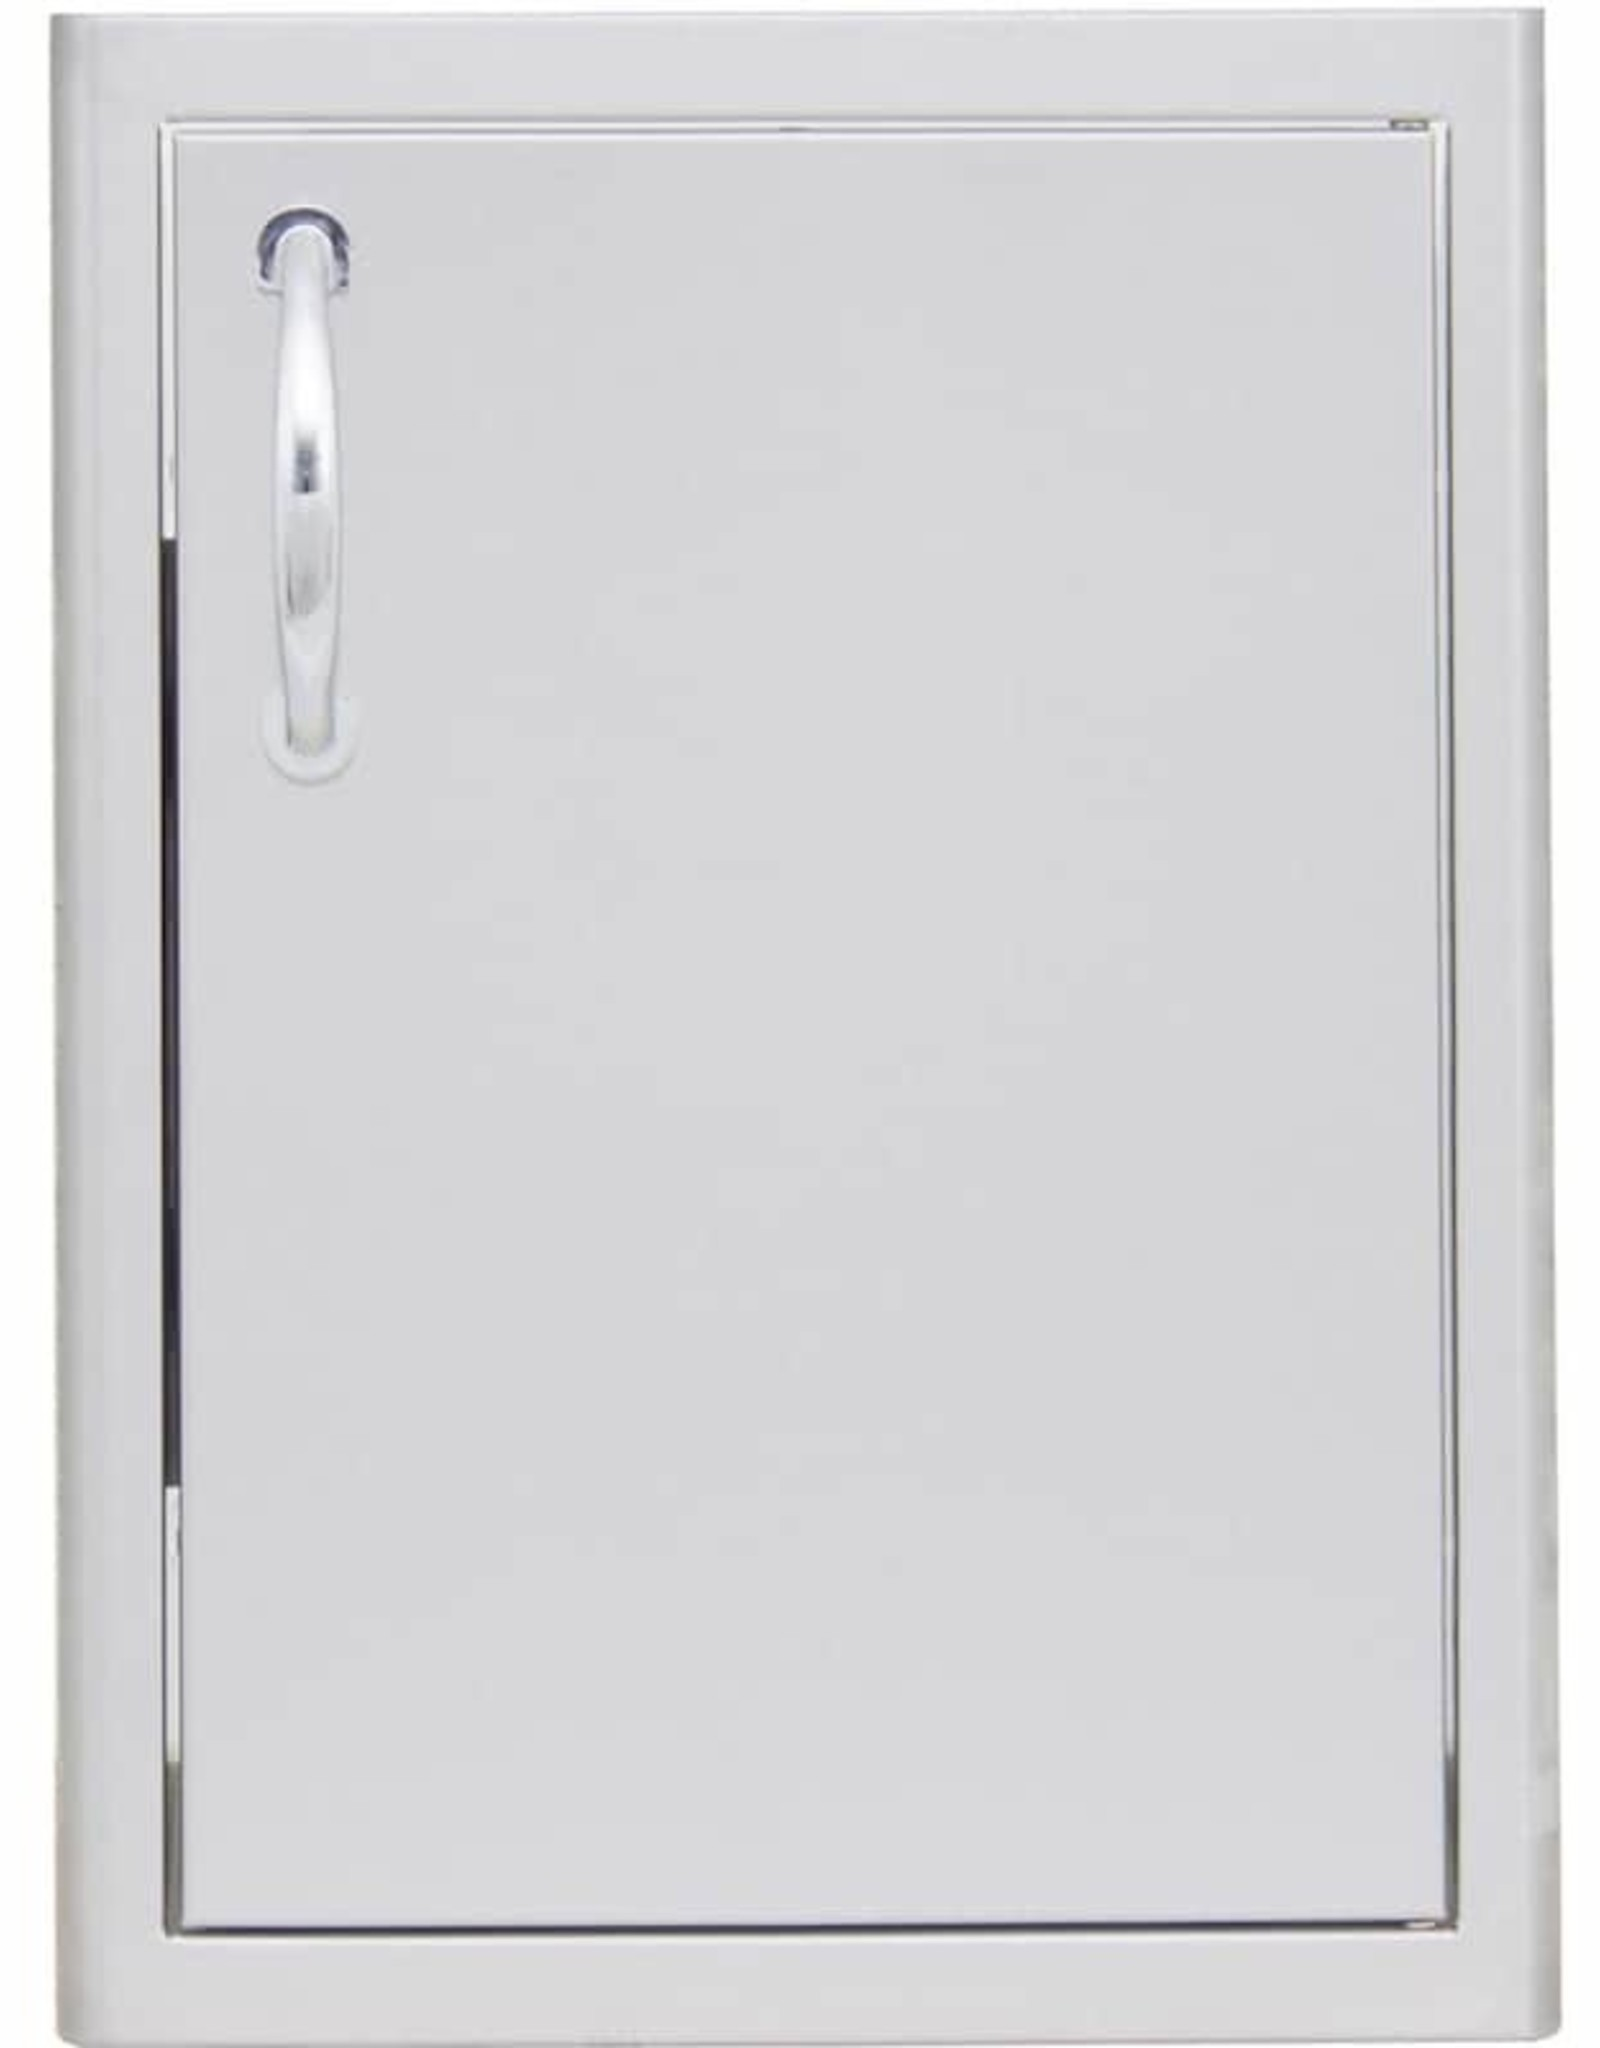 Blaze Outdoor Products Blaze 18-Inch Right Hinged Stainless Steel Single Access Door - Vertical - BLZ-SV-1420-R